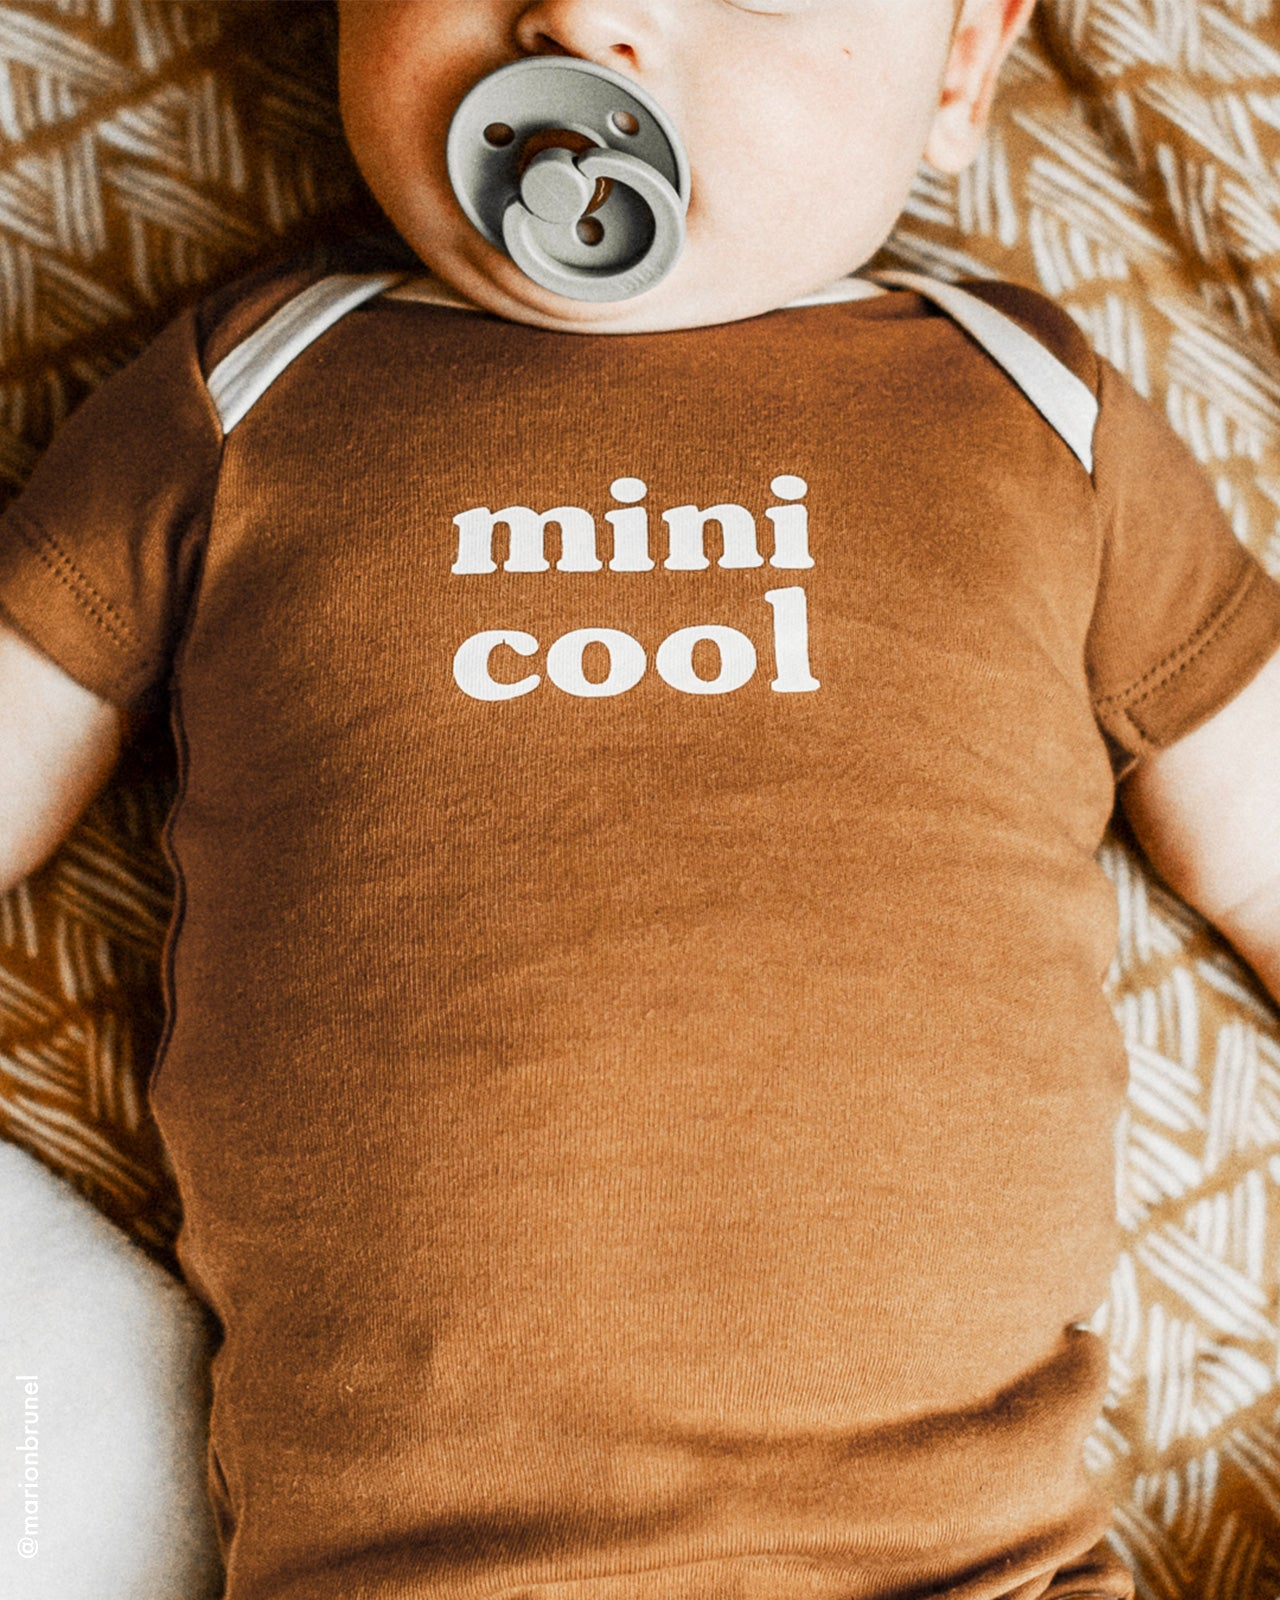 Le body Mini cool en coton bio - noisette